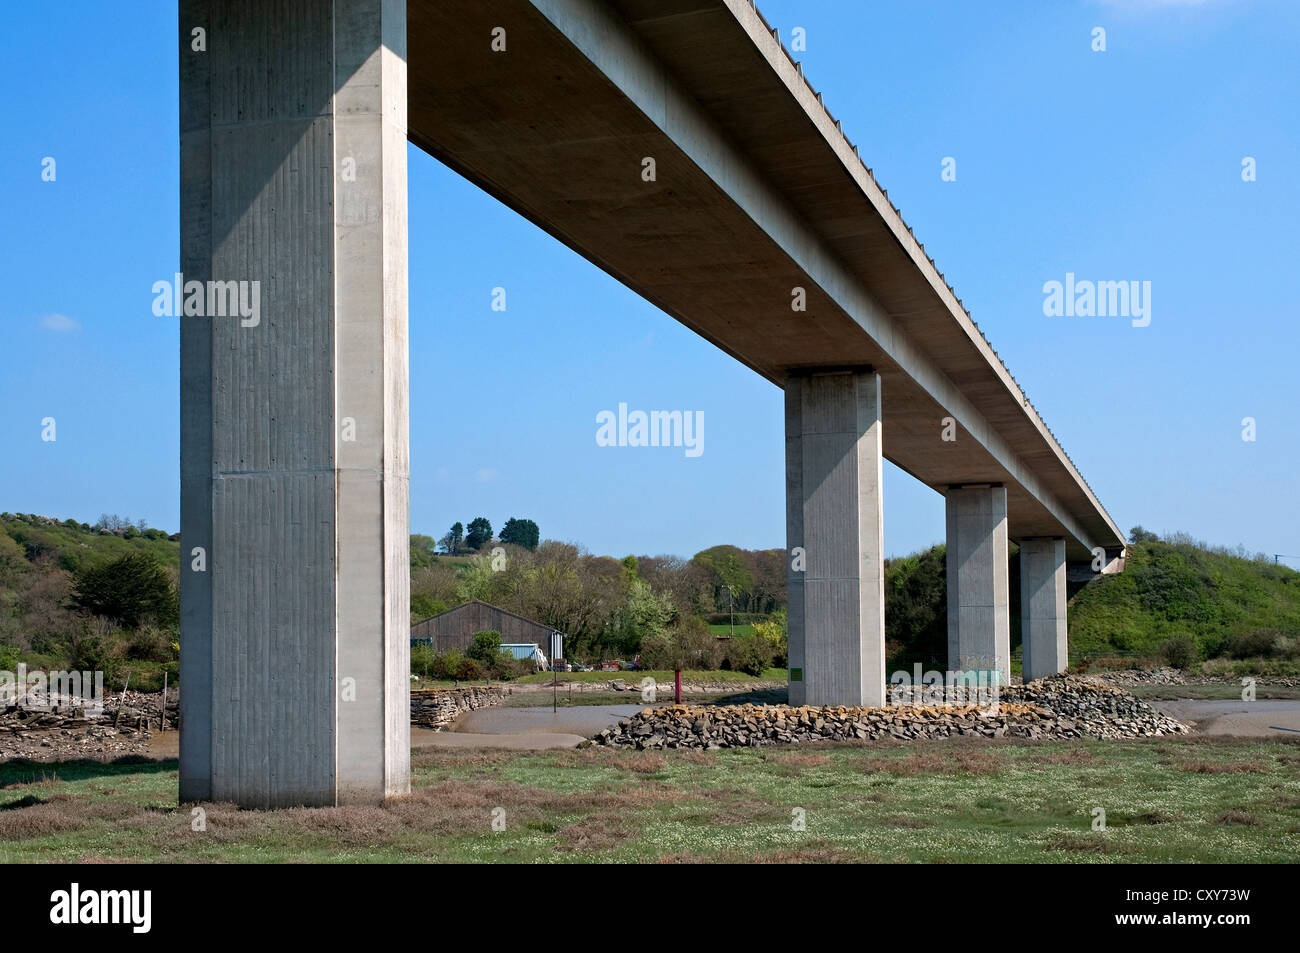 The A30 flyover spans the river camel at Wadebridge in Cornwall, UK - Stock Image